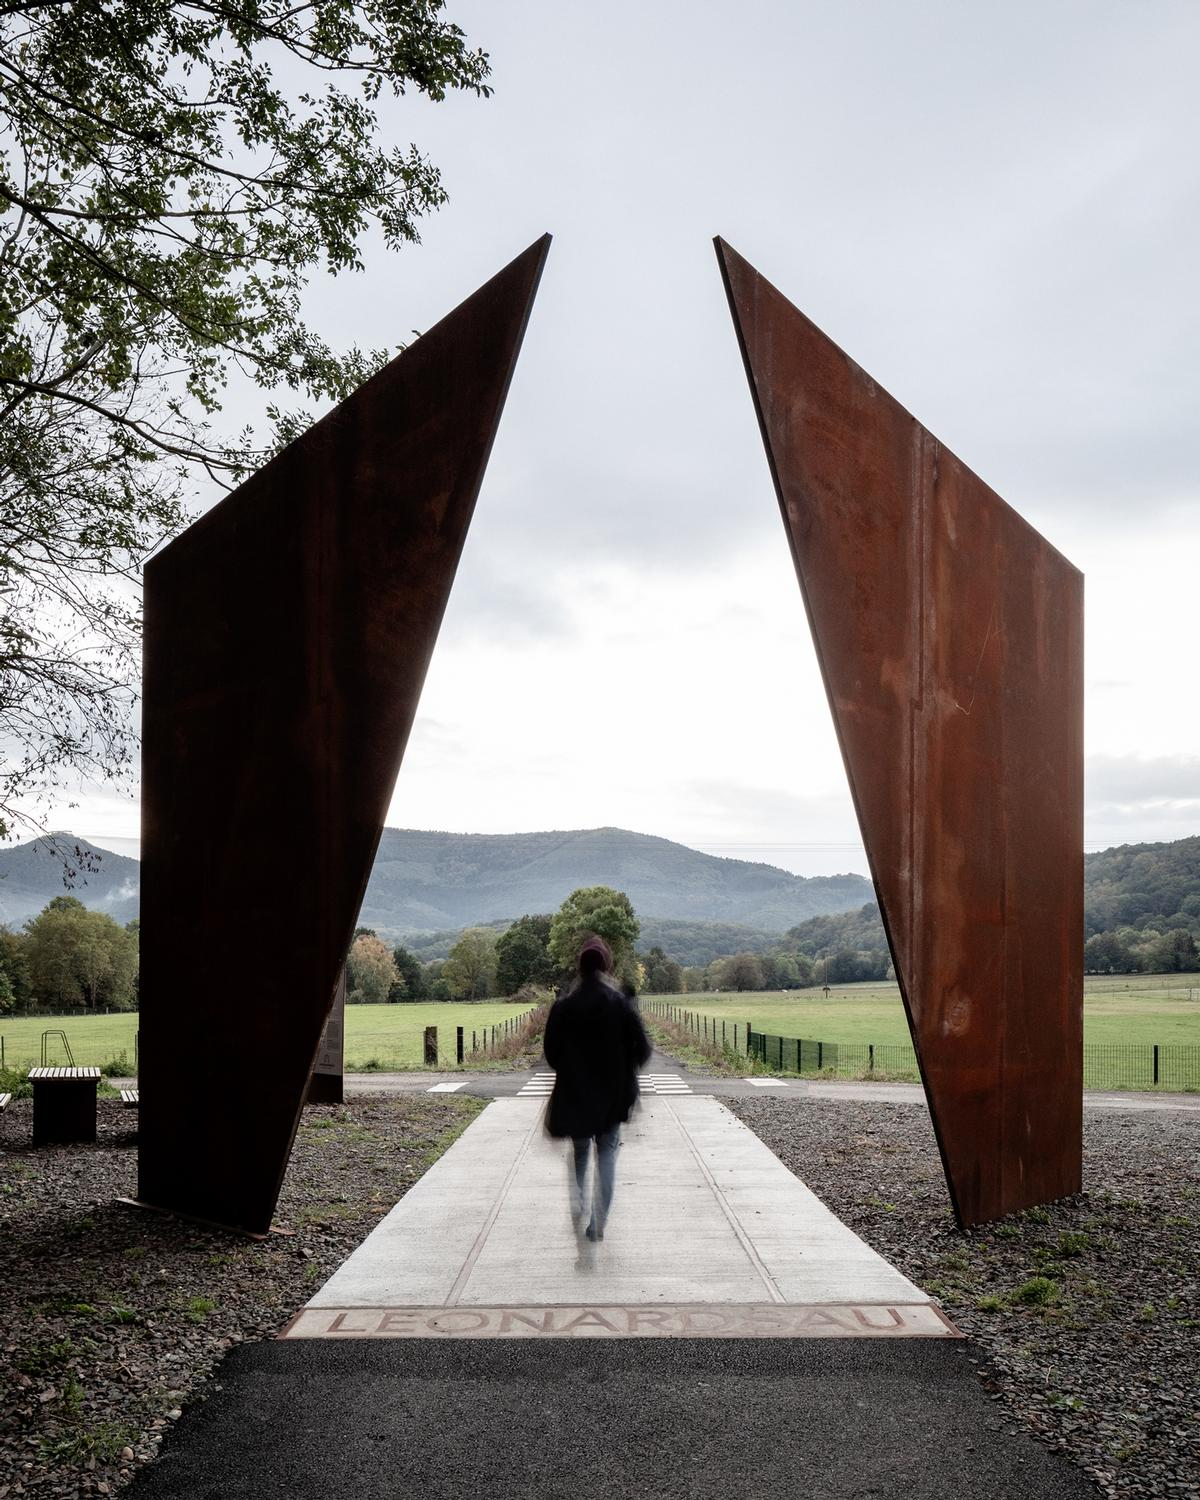 Two large steel plates plates at Leonardsau frame the view of the landscape as it opens up / 11h45